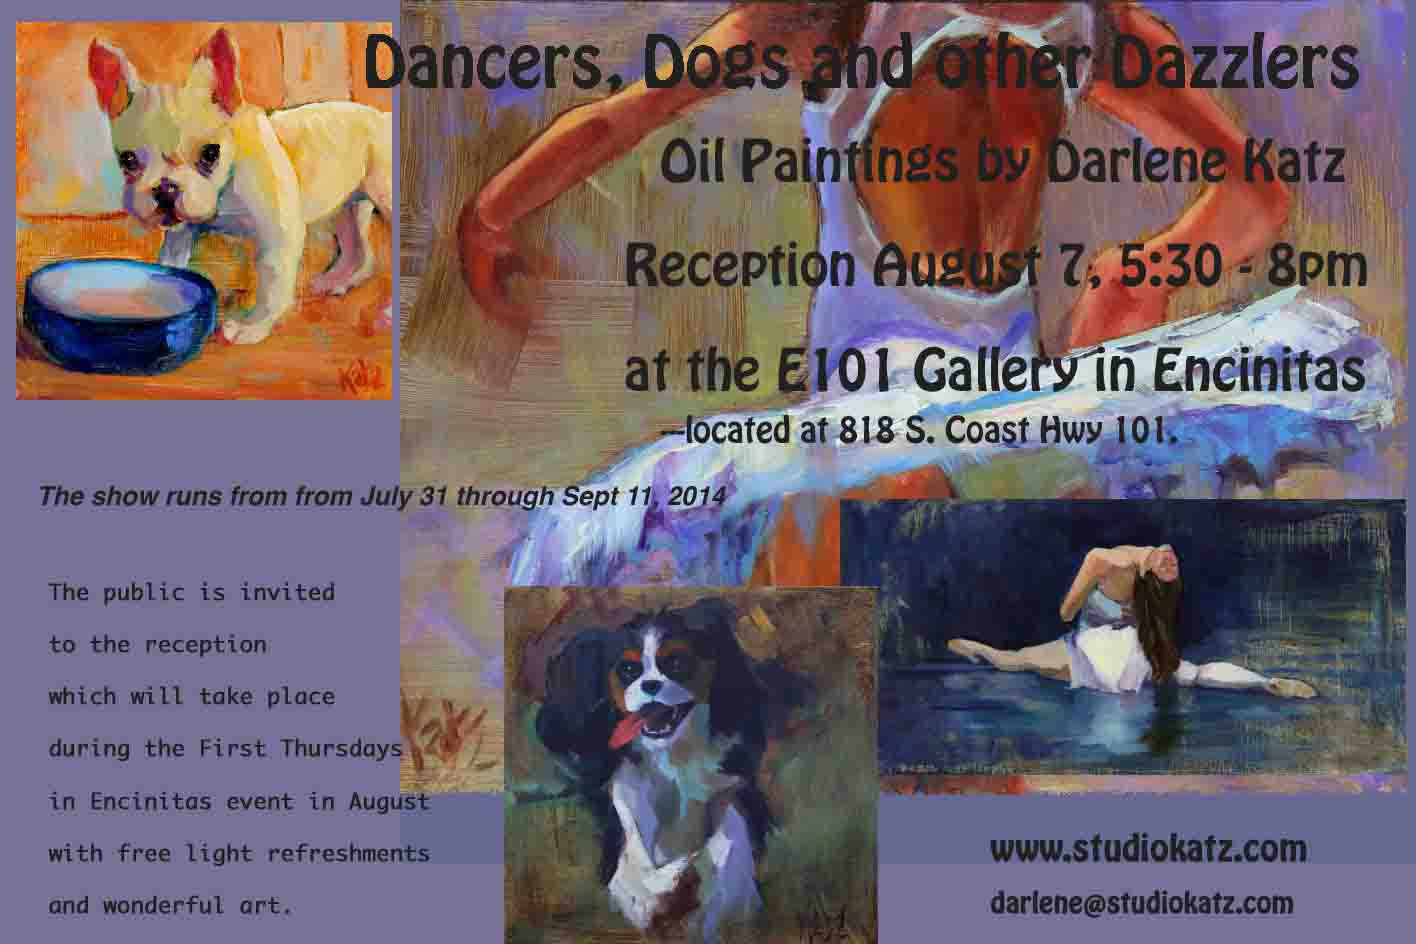 Some paintings for the Dancers & Dogs & other Dazzlers Exhibit